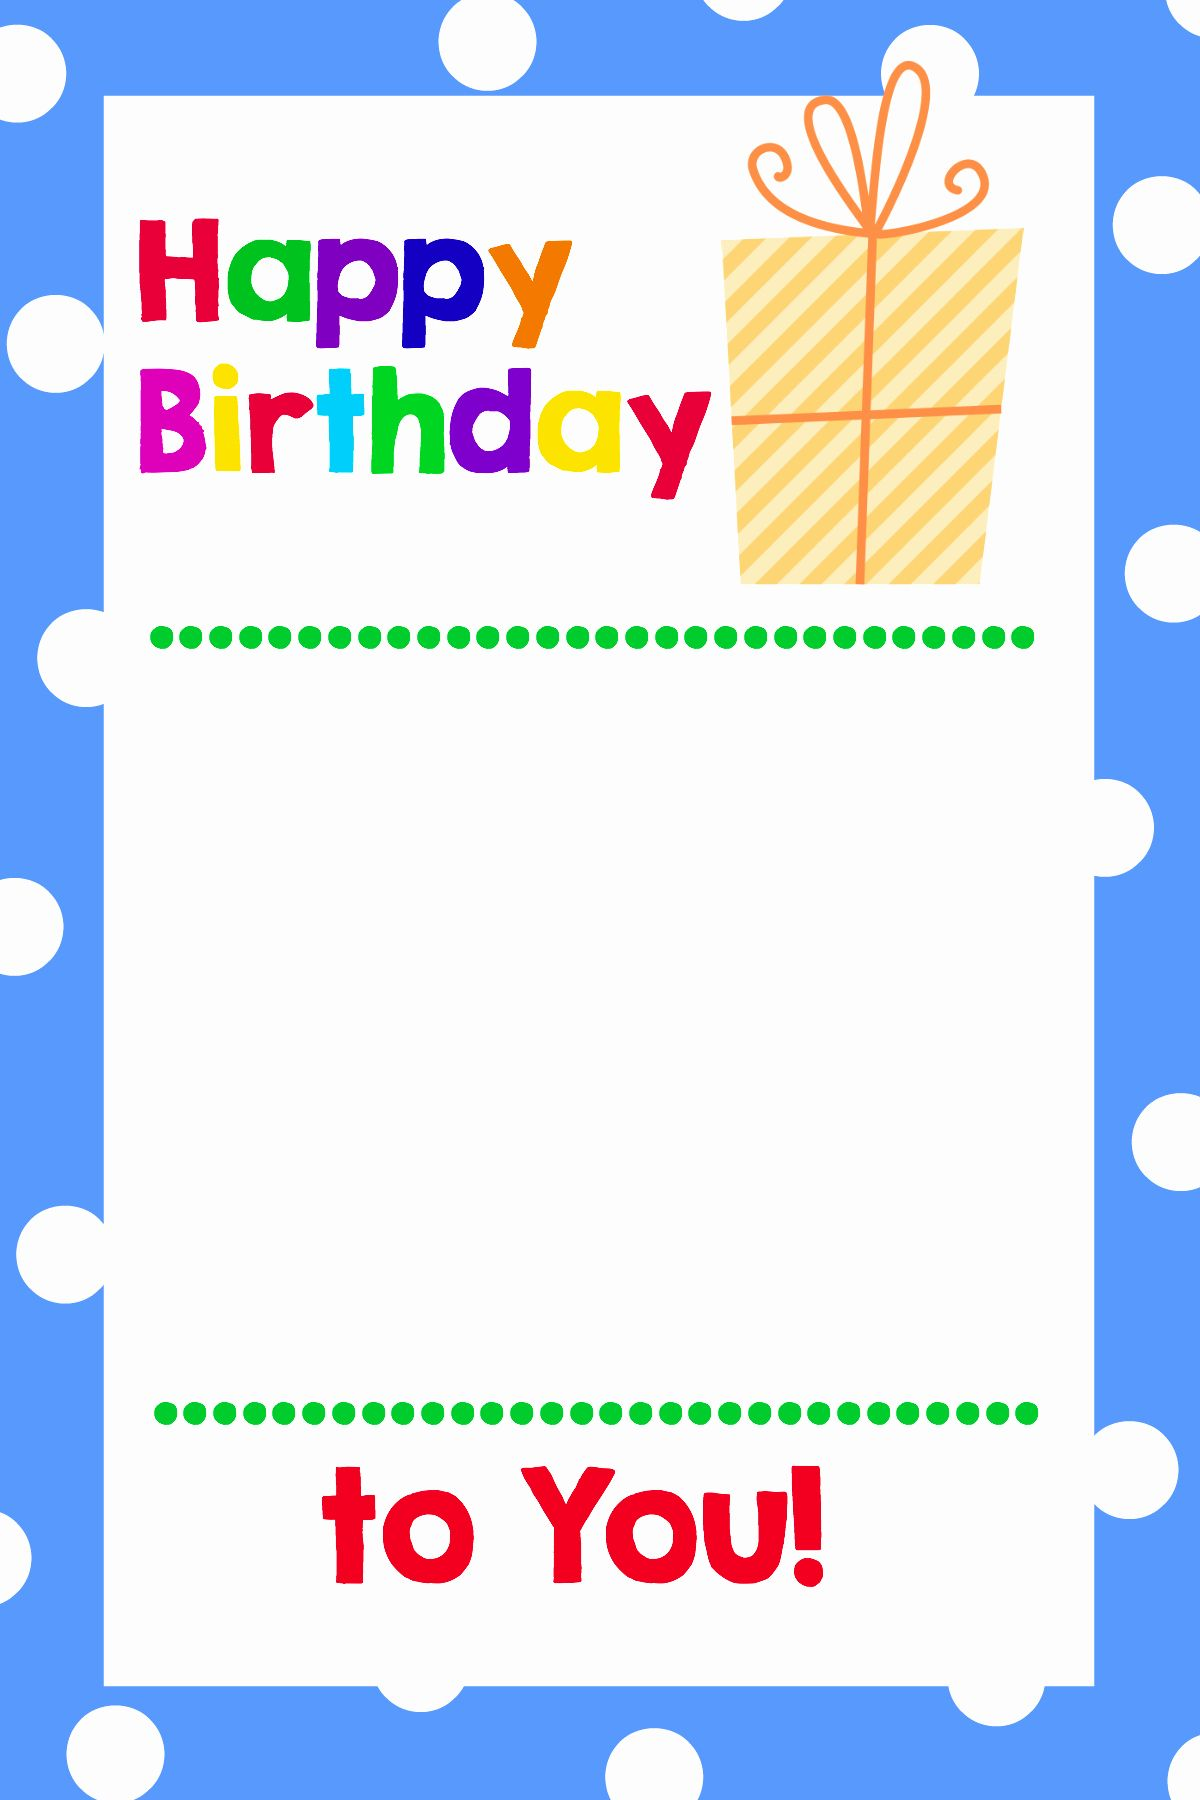 40 Free Birthday Card Templates In 2020 Birthday Gift Card Holder Birthday Gift Cards Printable Gift Cards